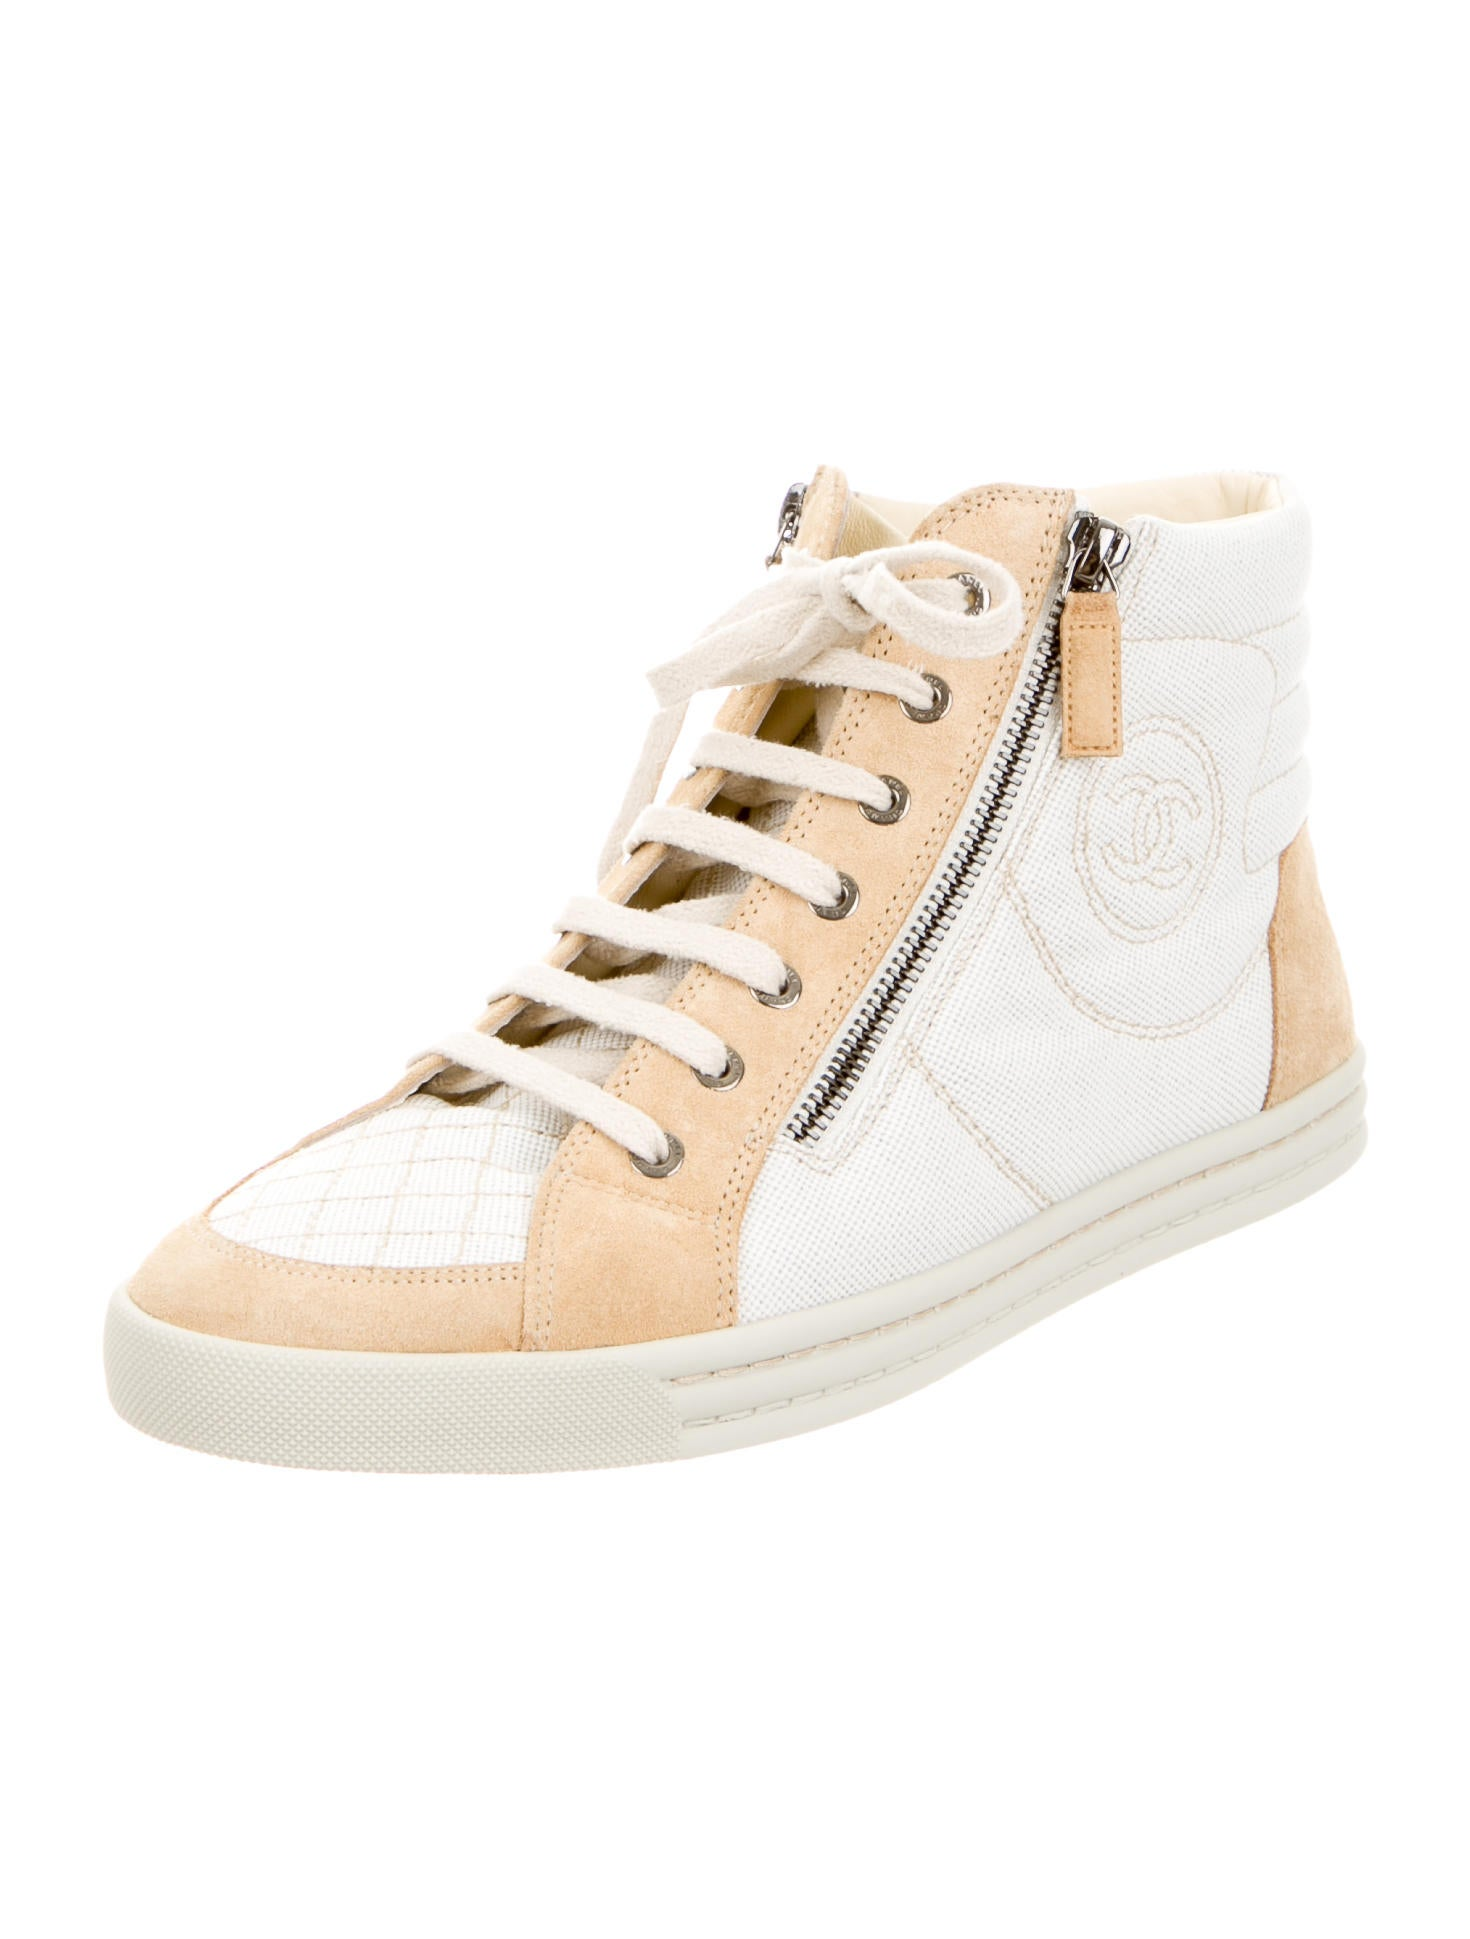 chanel canvas high top sneakers w tags shoes